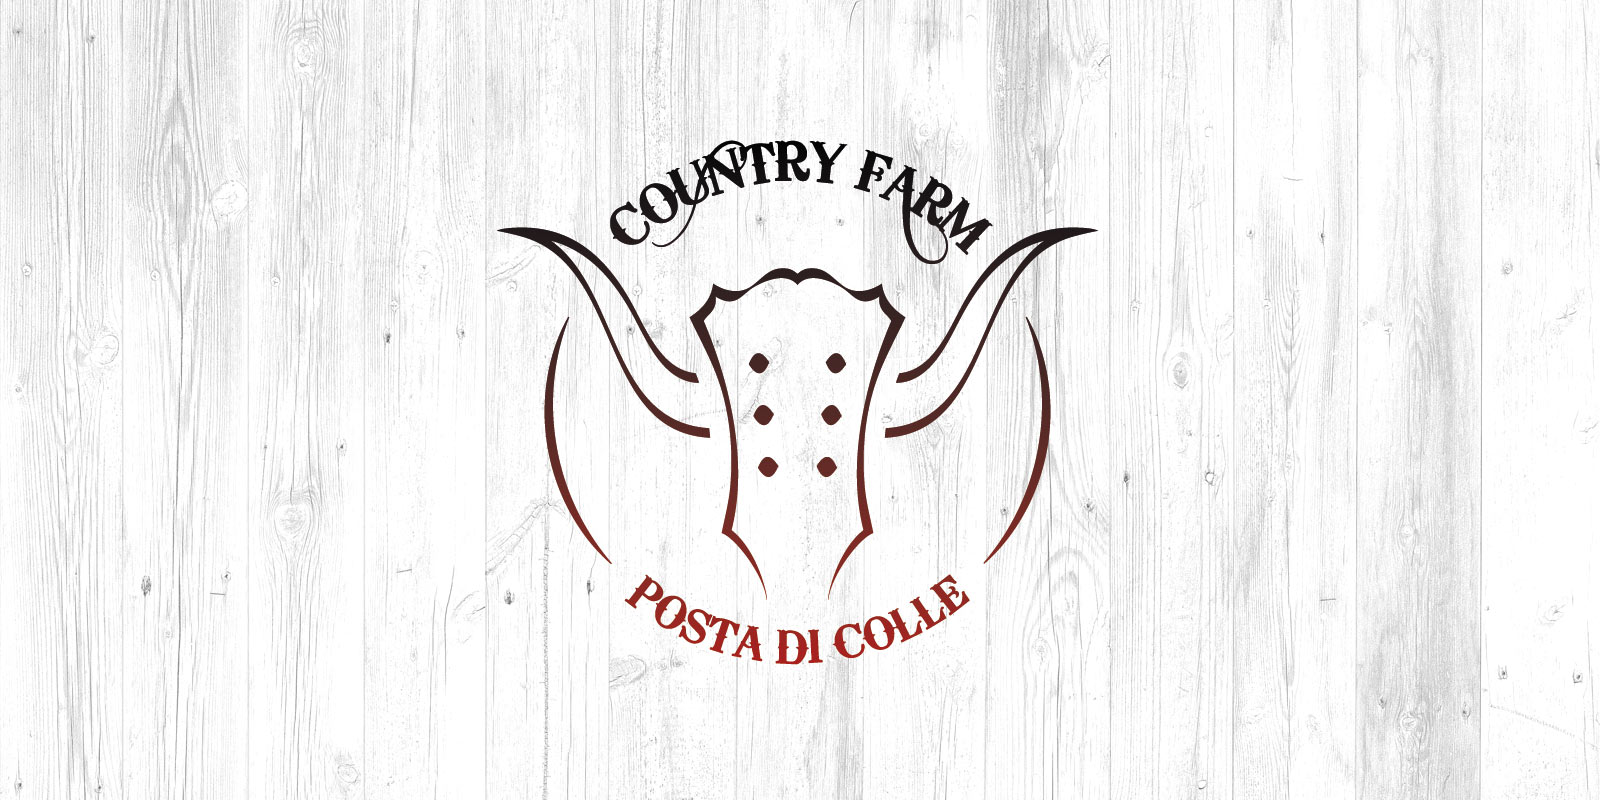 marchio country farm